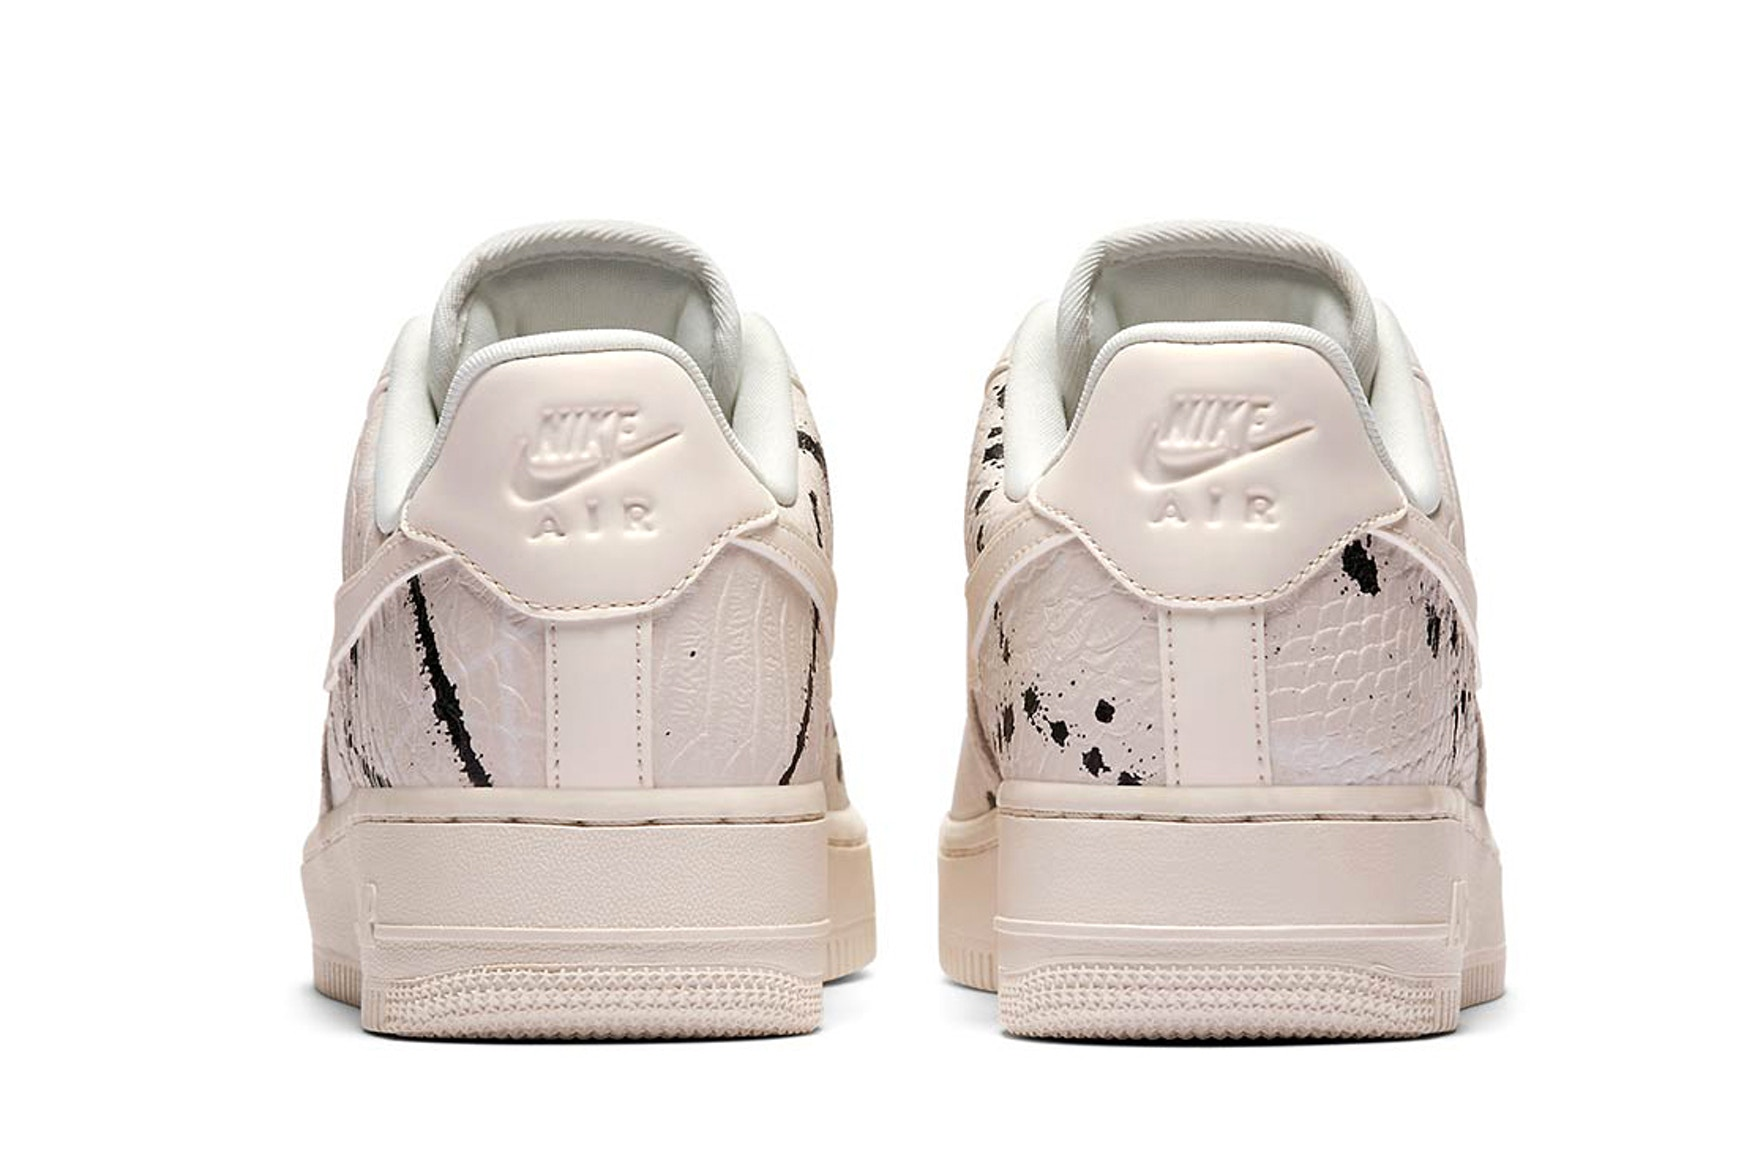 """f489253b6ad9 You can get you feet in a pair of The Nike Air Force 1 """"Phantom Snakeskin""""  at select Nike UK locations for £90 GBP (approx  110 USD)."""